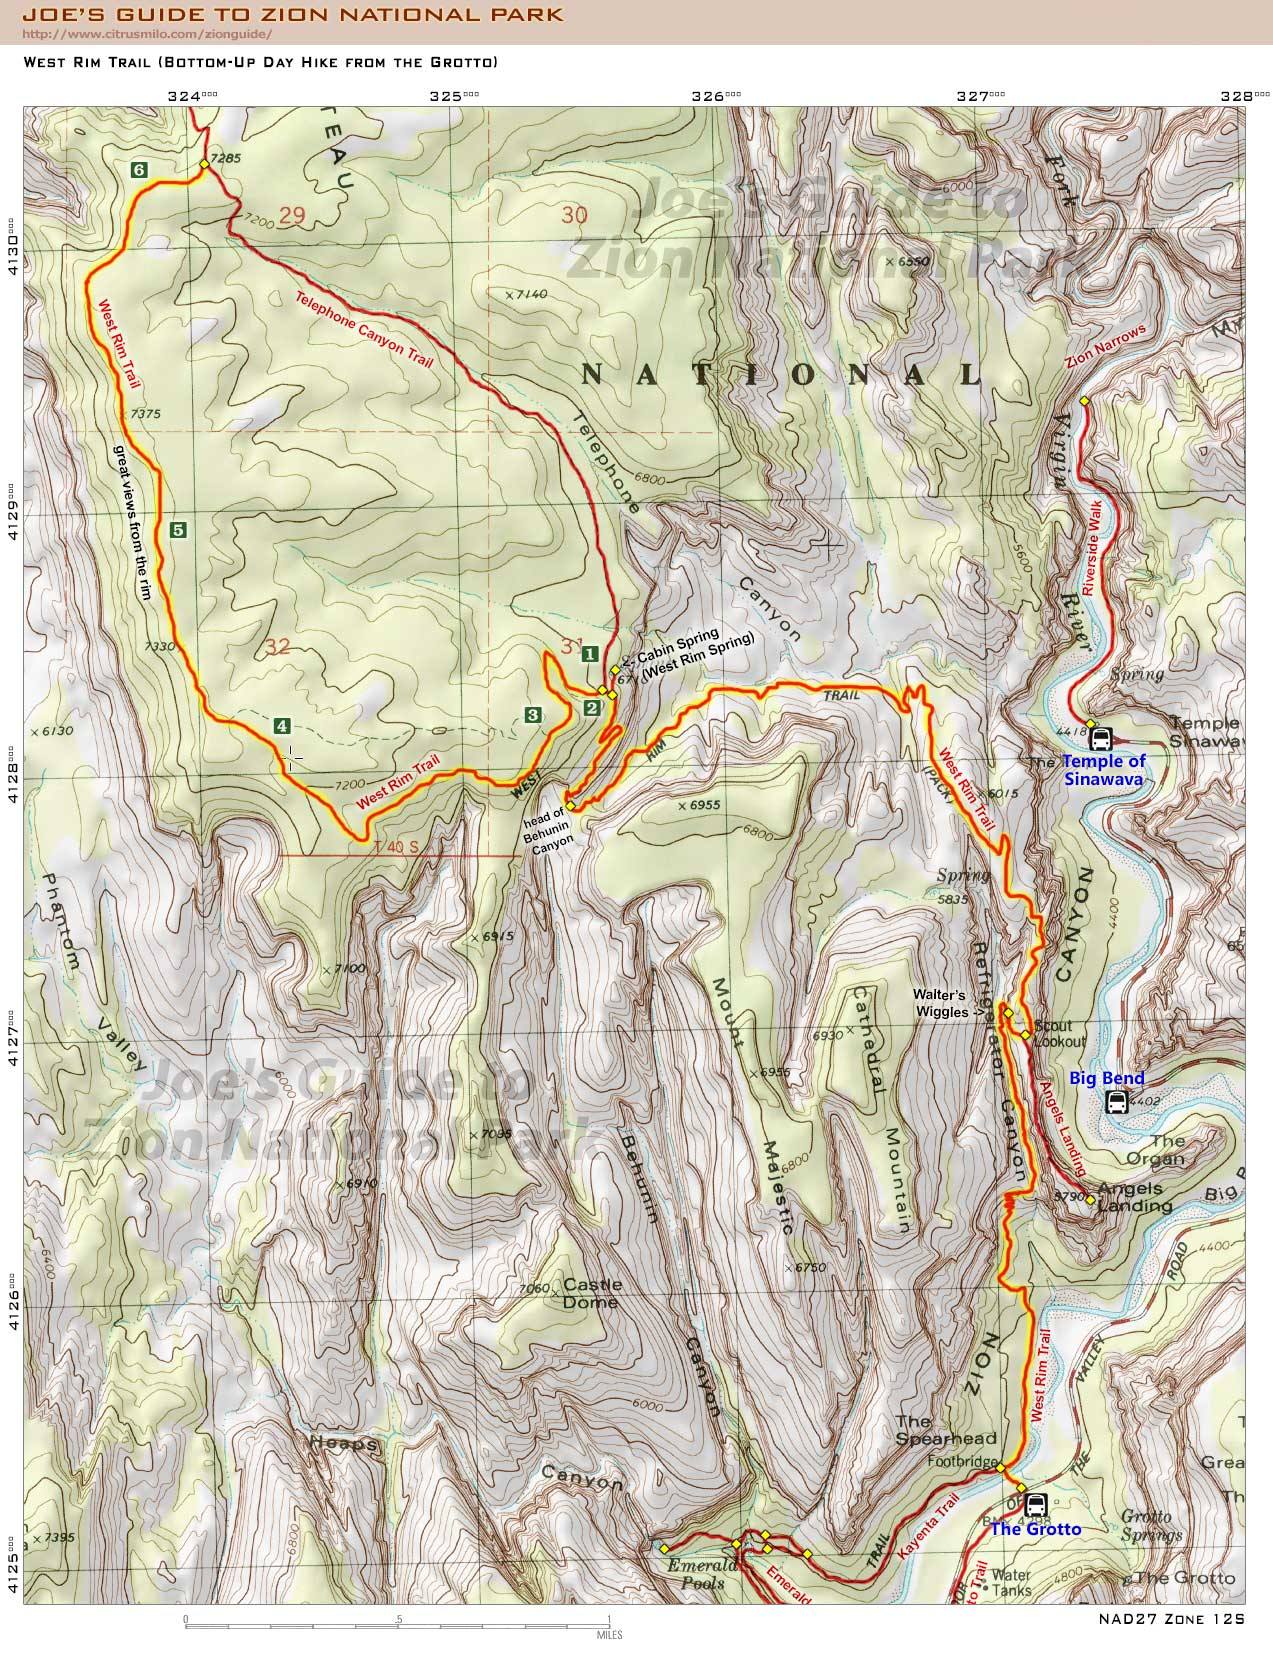 Zion National Park Hiking Map on